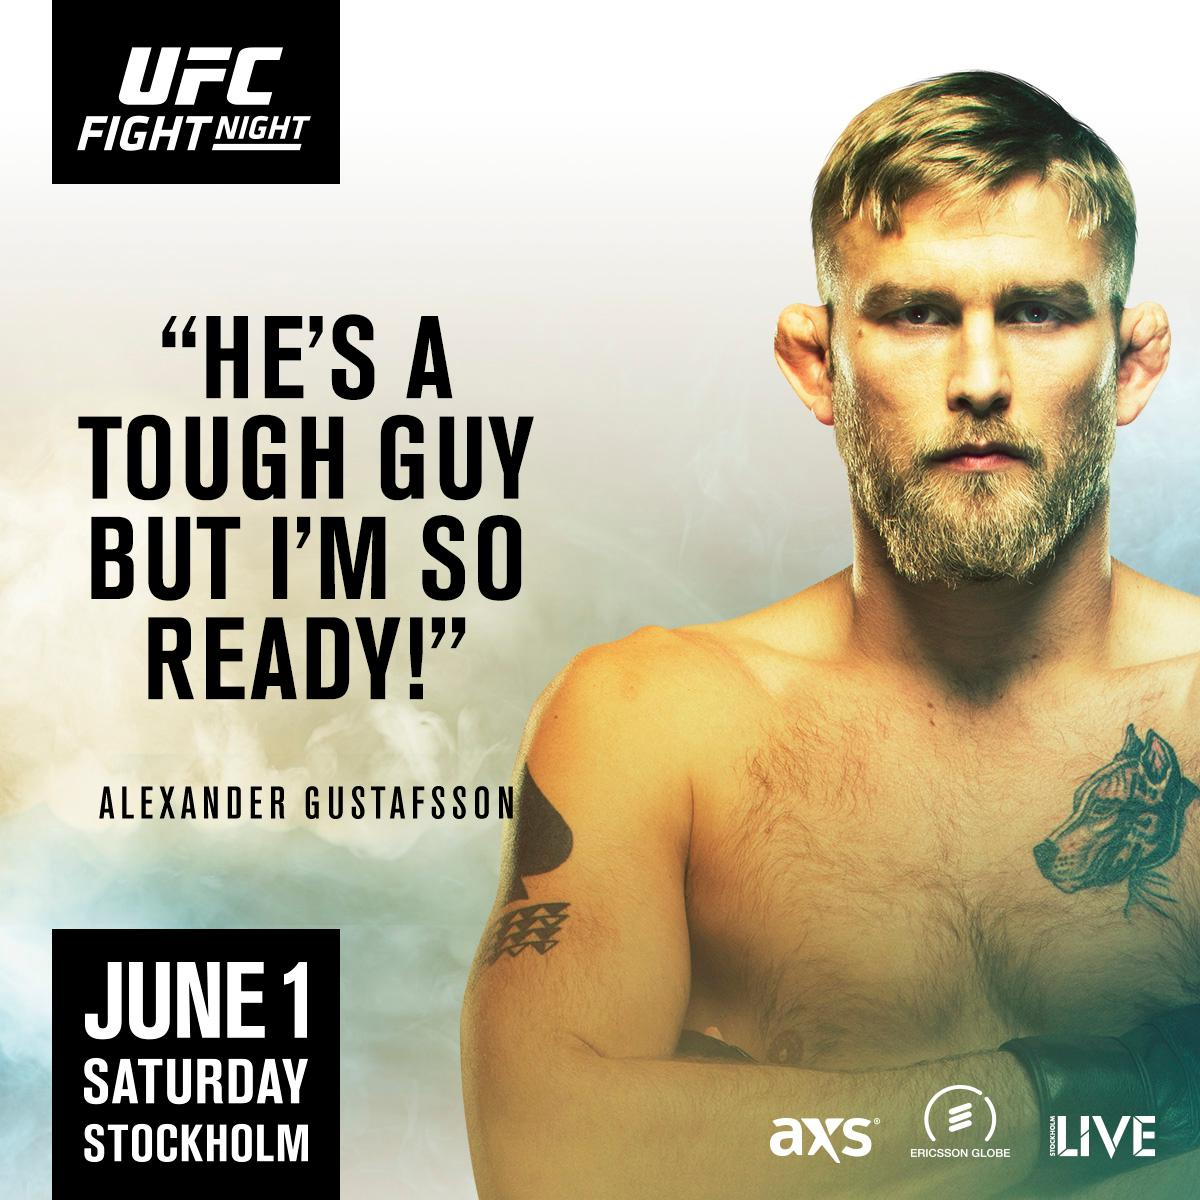 RT UFCEurope: 🇸🇪 AlexTheMauler has no intentions of letting down his home fans tomorrow at #UFCStockholm! https://t.co/VwL9mBEk7b #ufc #mma